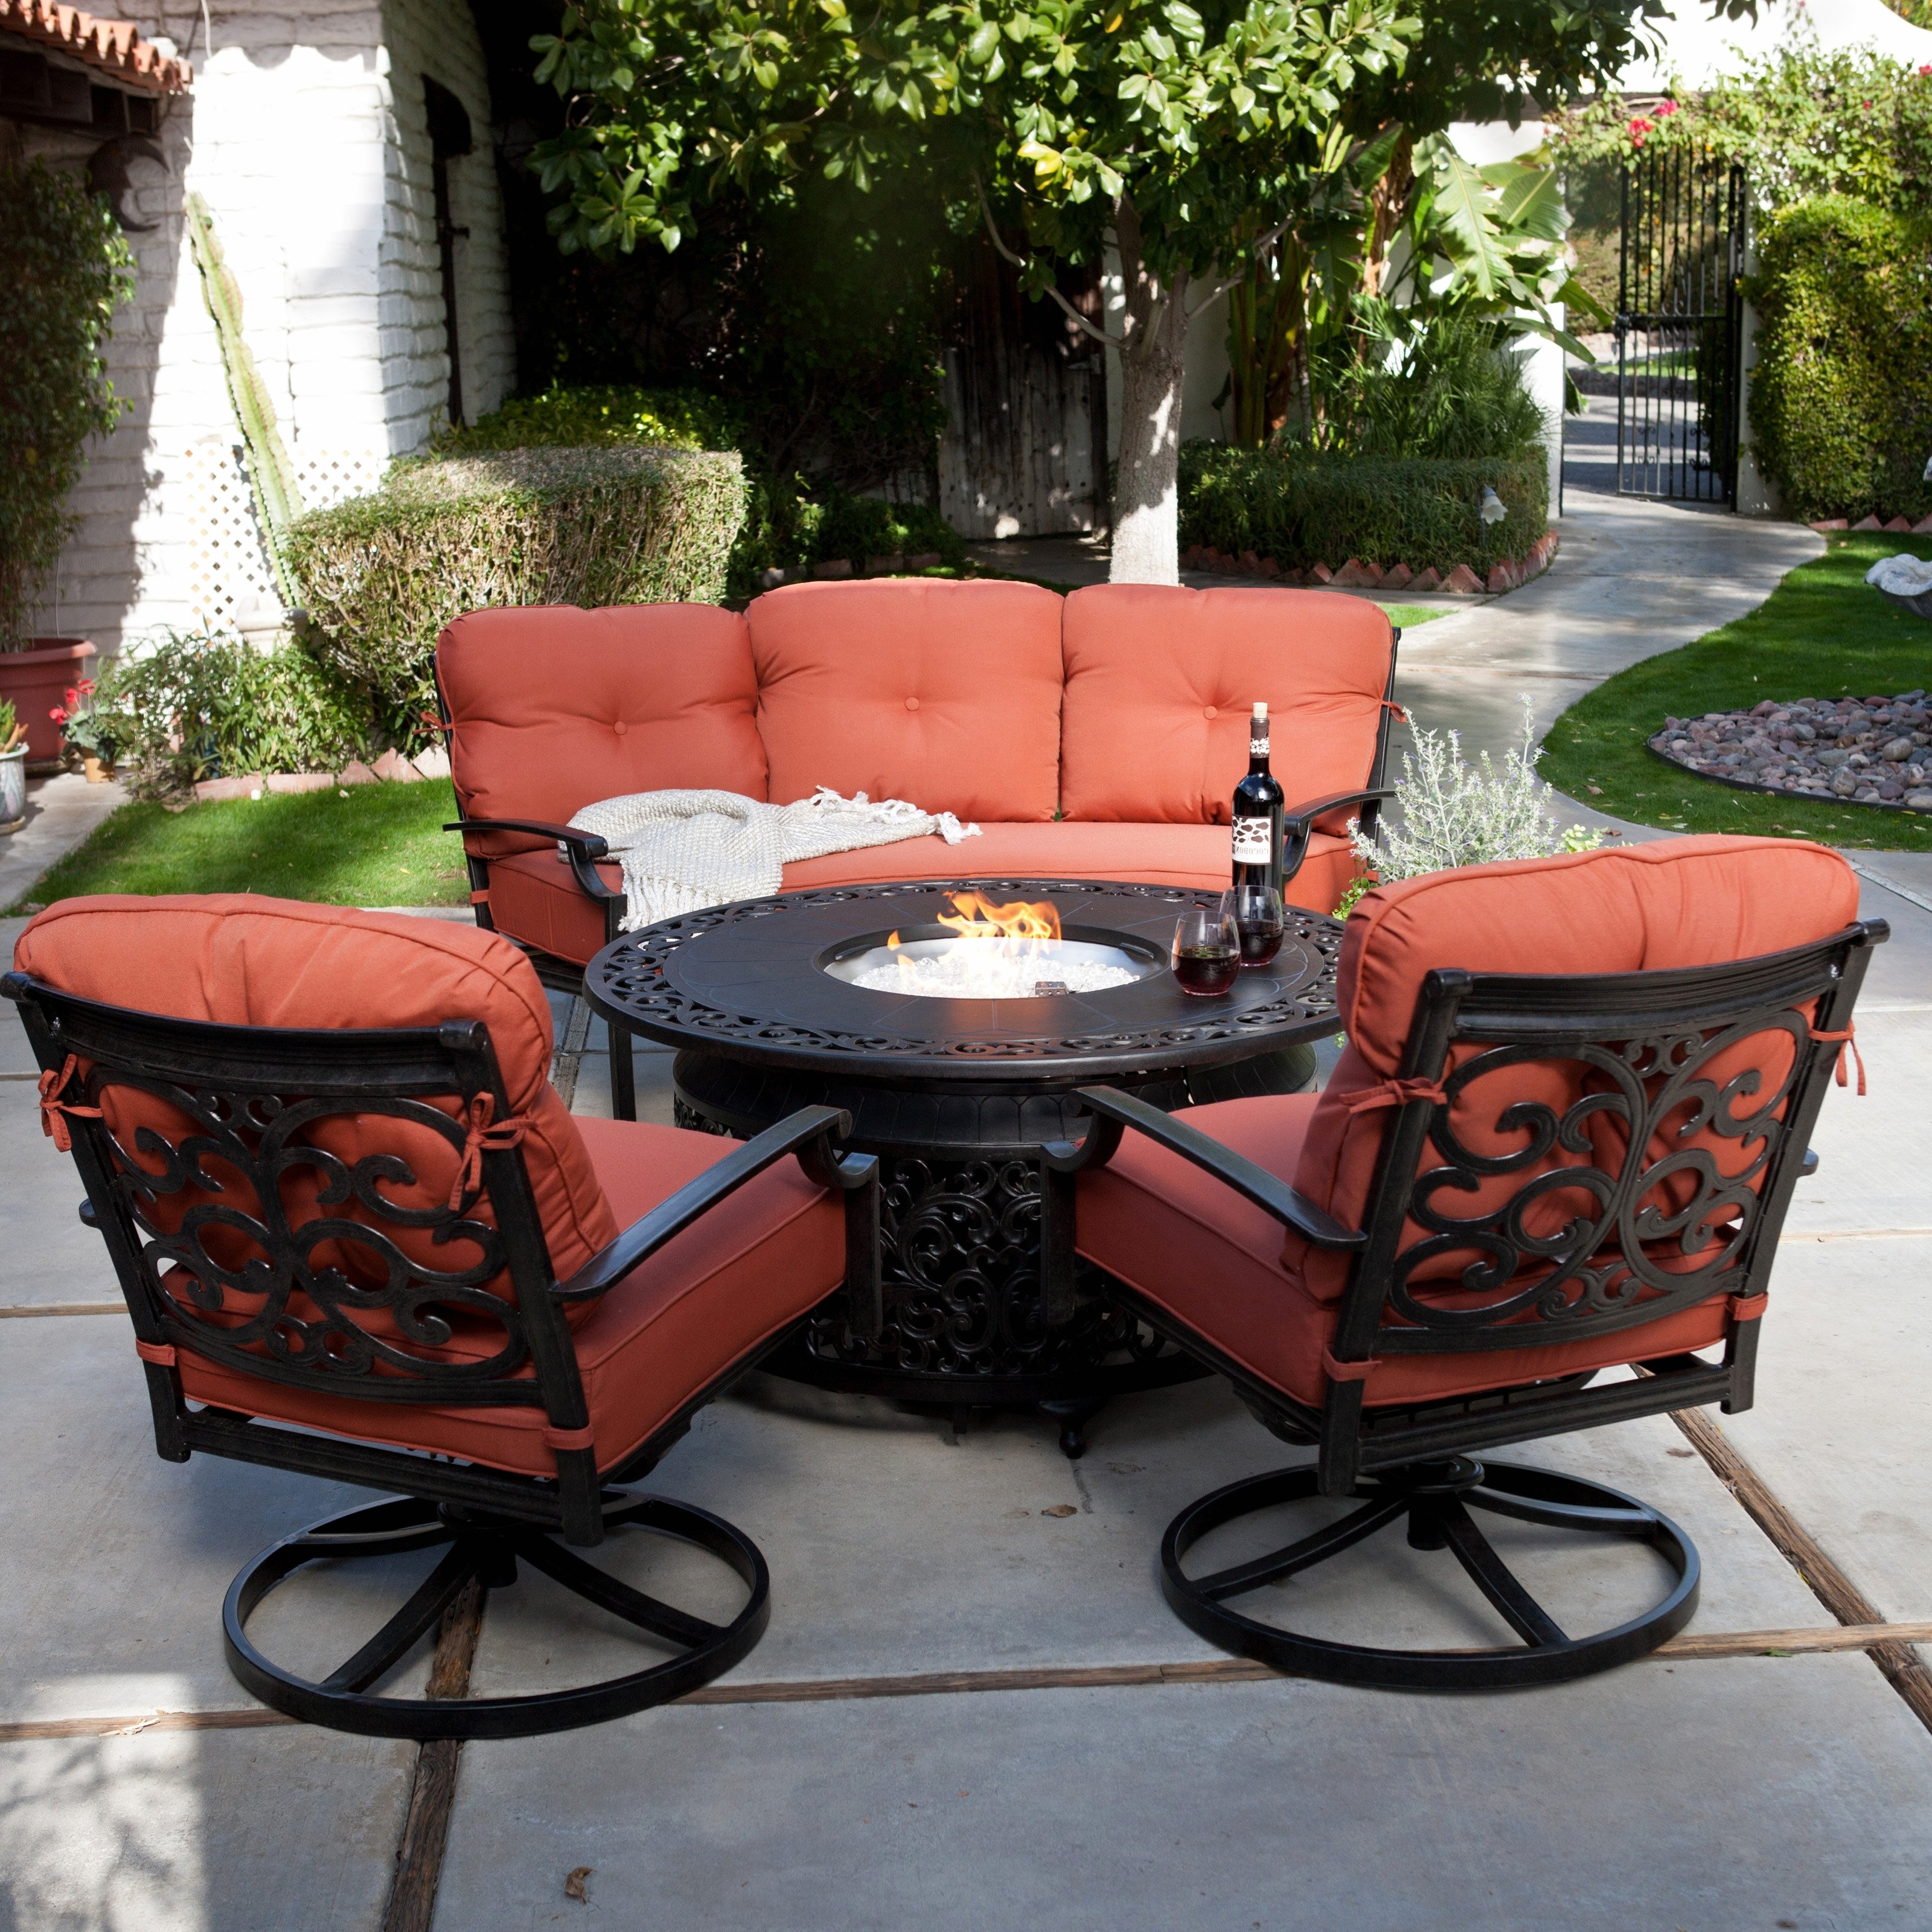 Current Patio Conversation Sets With Fire Pit Intended For 30 Amazing Propane Fire Pit Set Design (View 3 of 15)